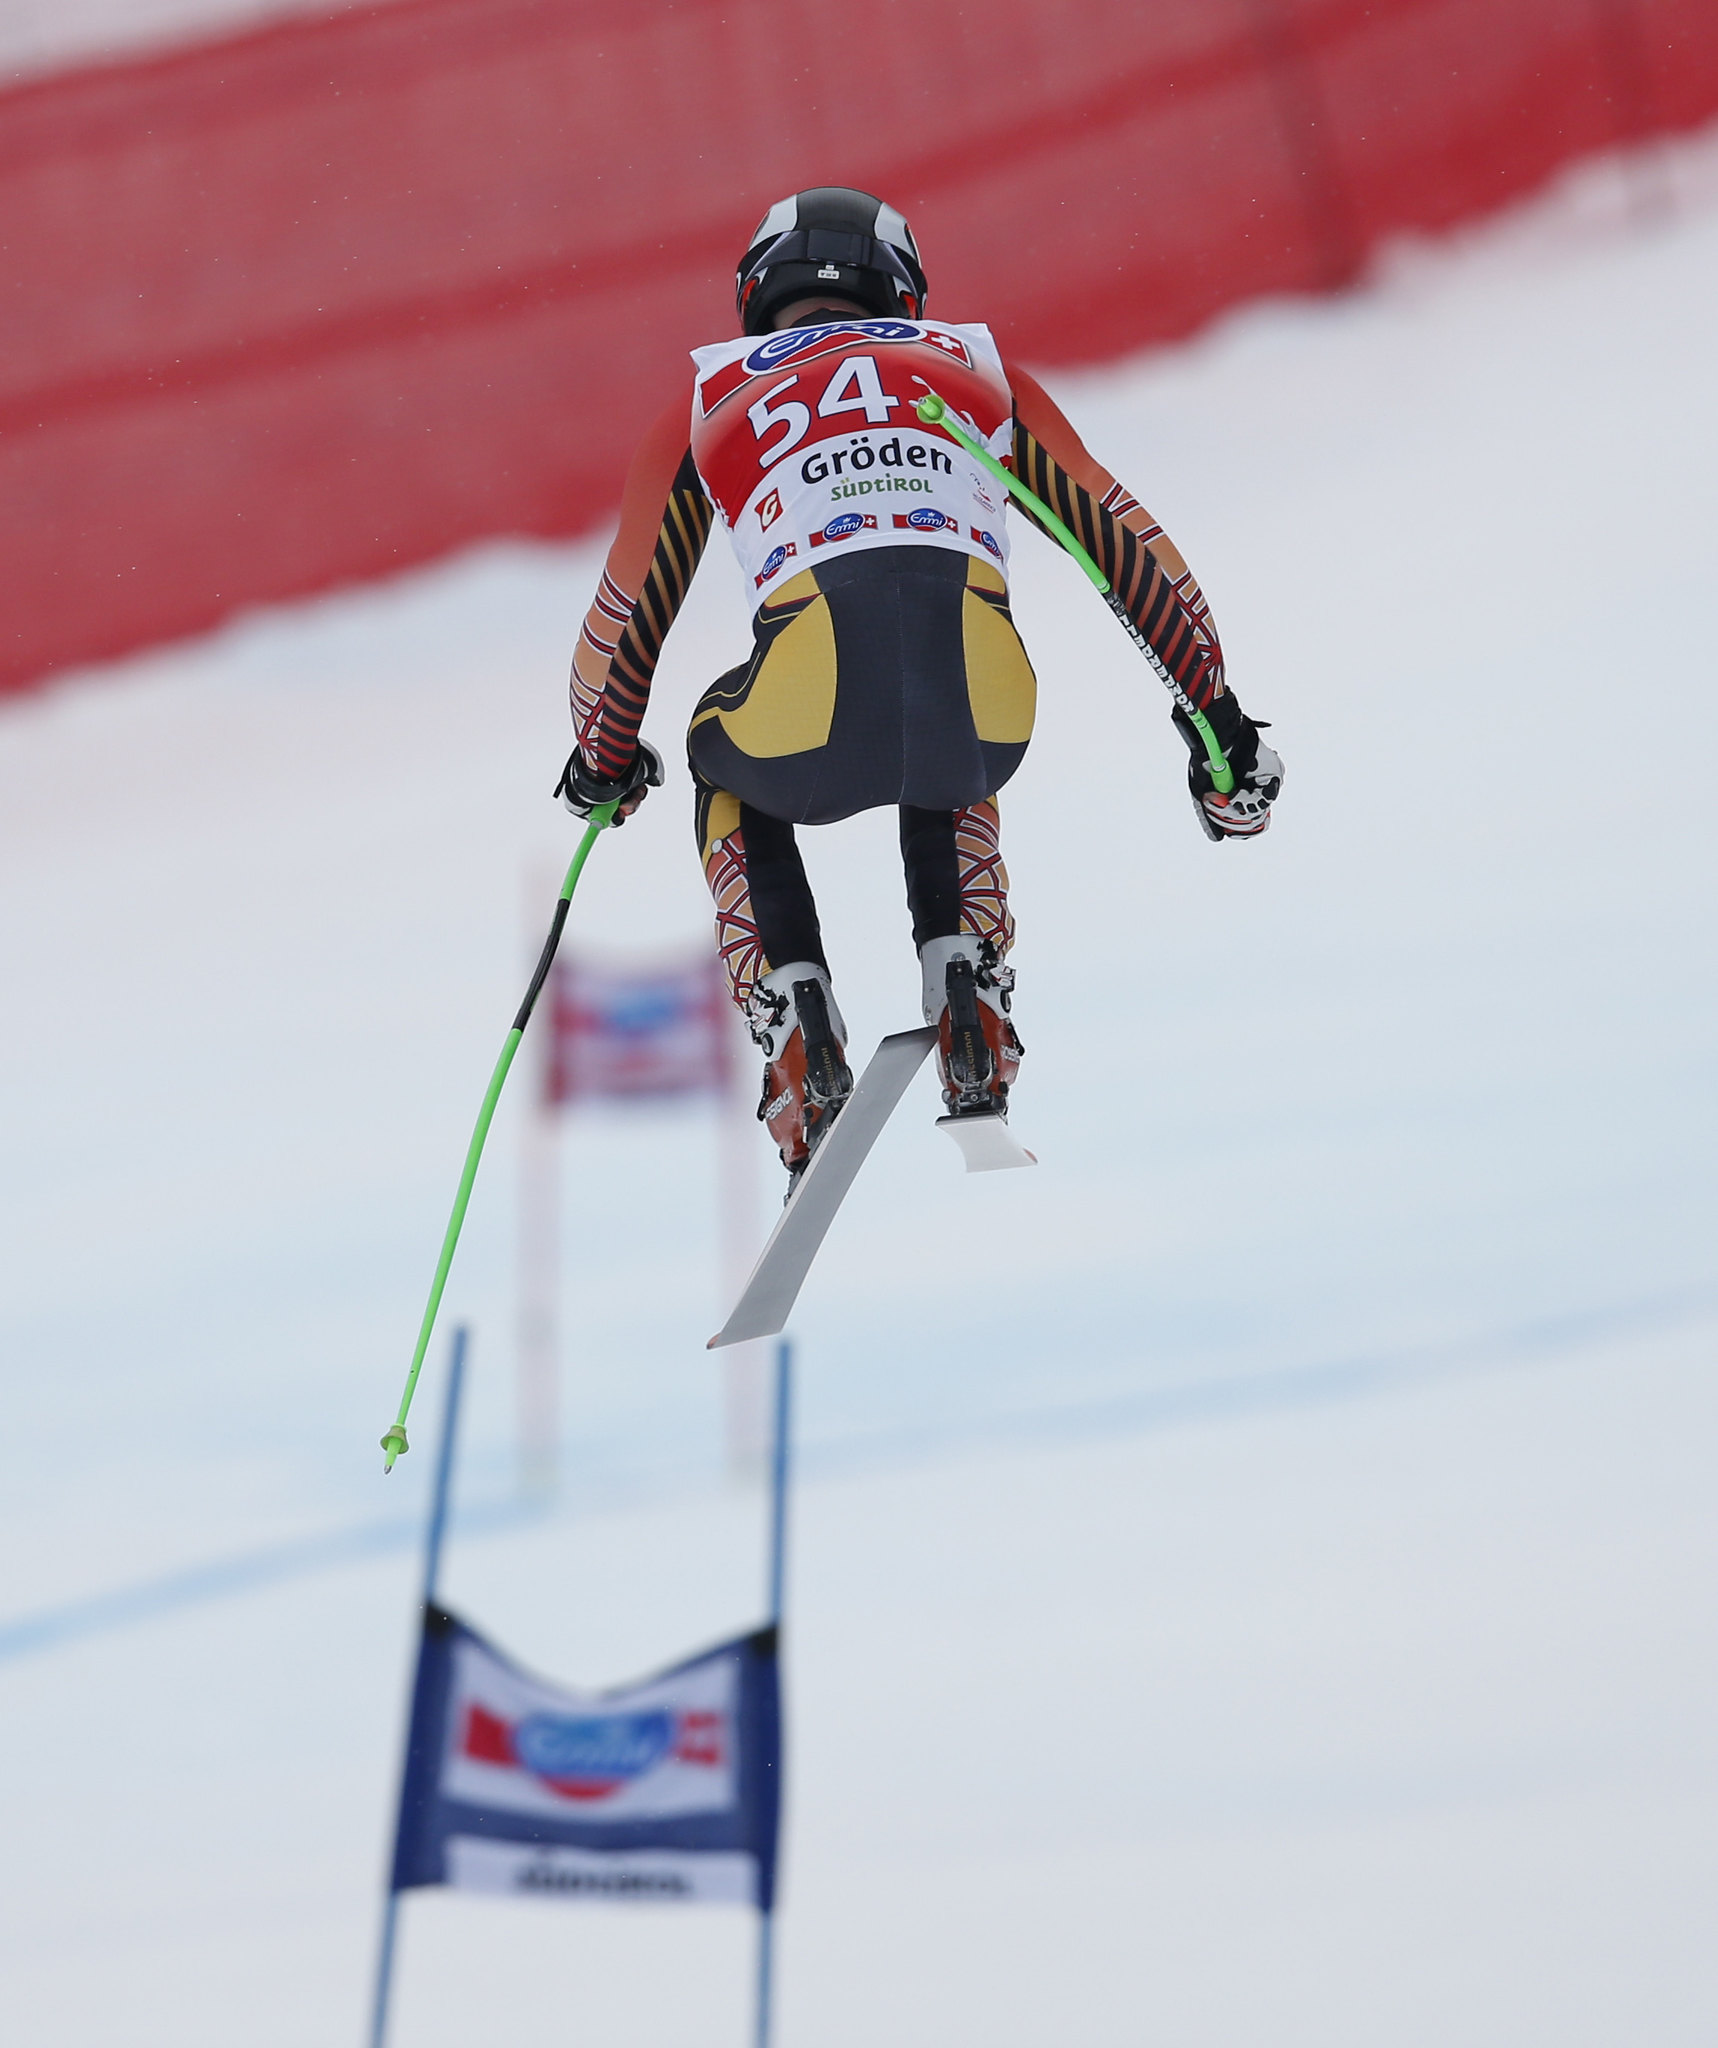 Robbie Dixon catches some air during the Super-G in Val Gardena, ITA